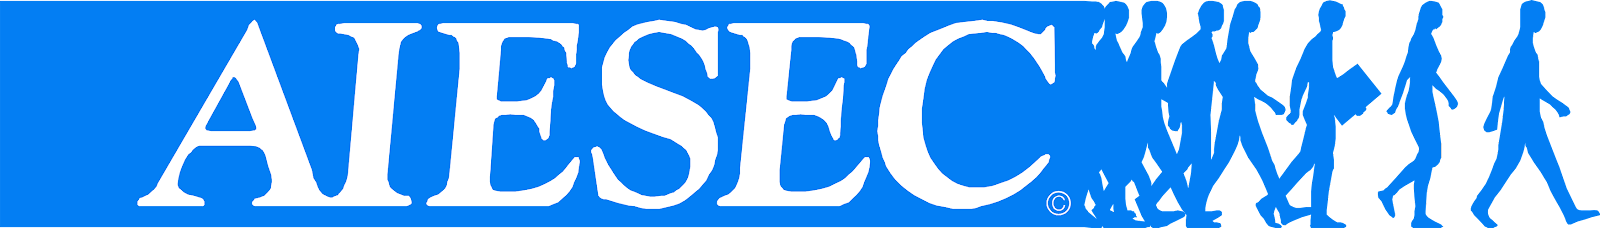 Aiesec-blue-1 small.png